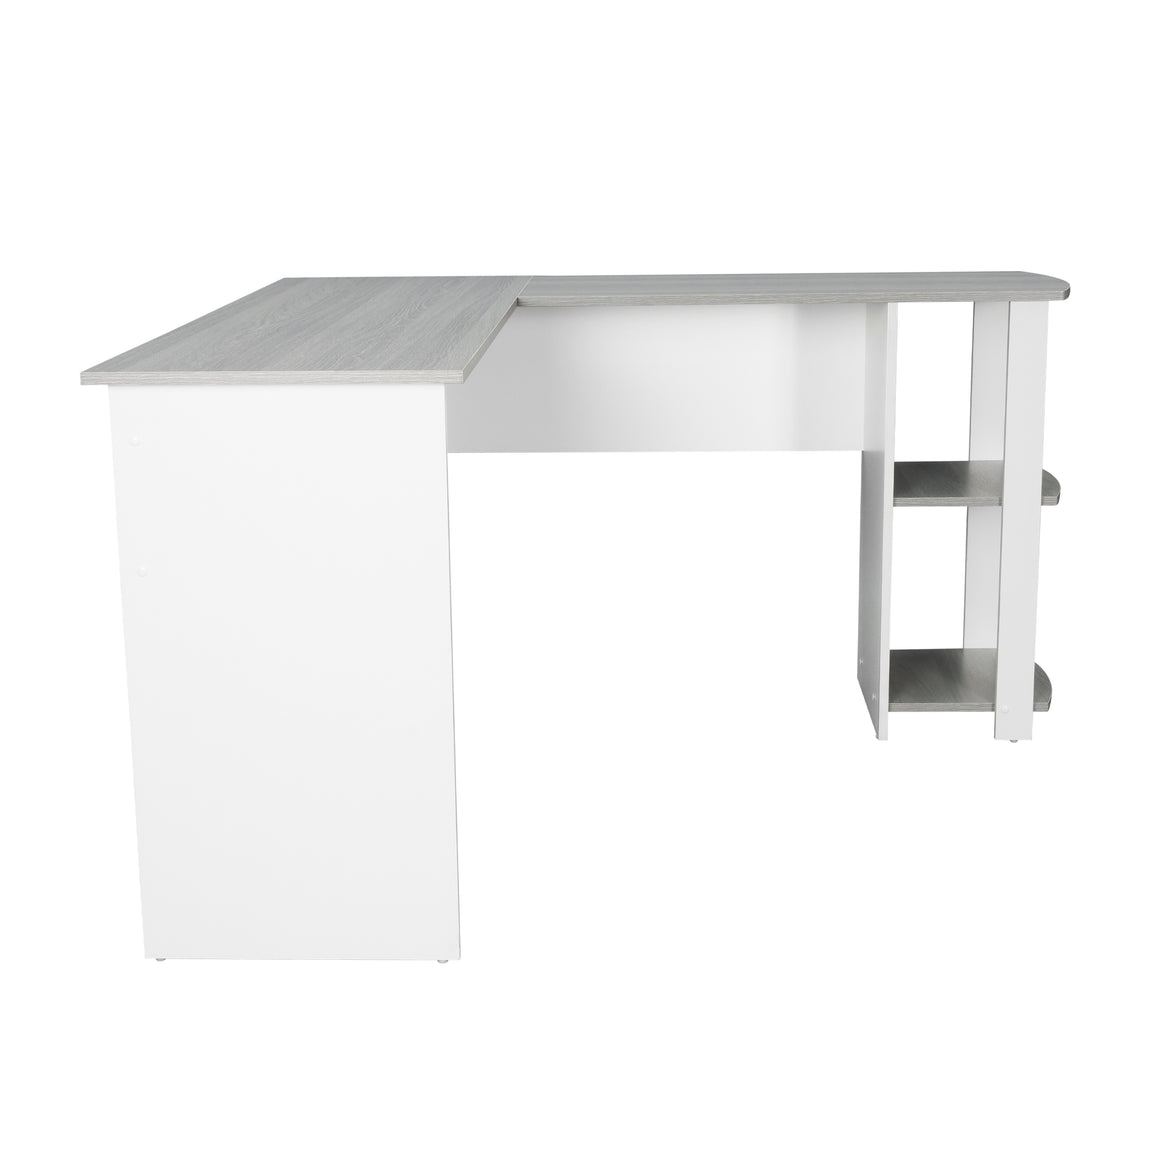 Modern L-Shaped Desk with Side Shelves